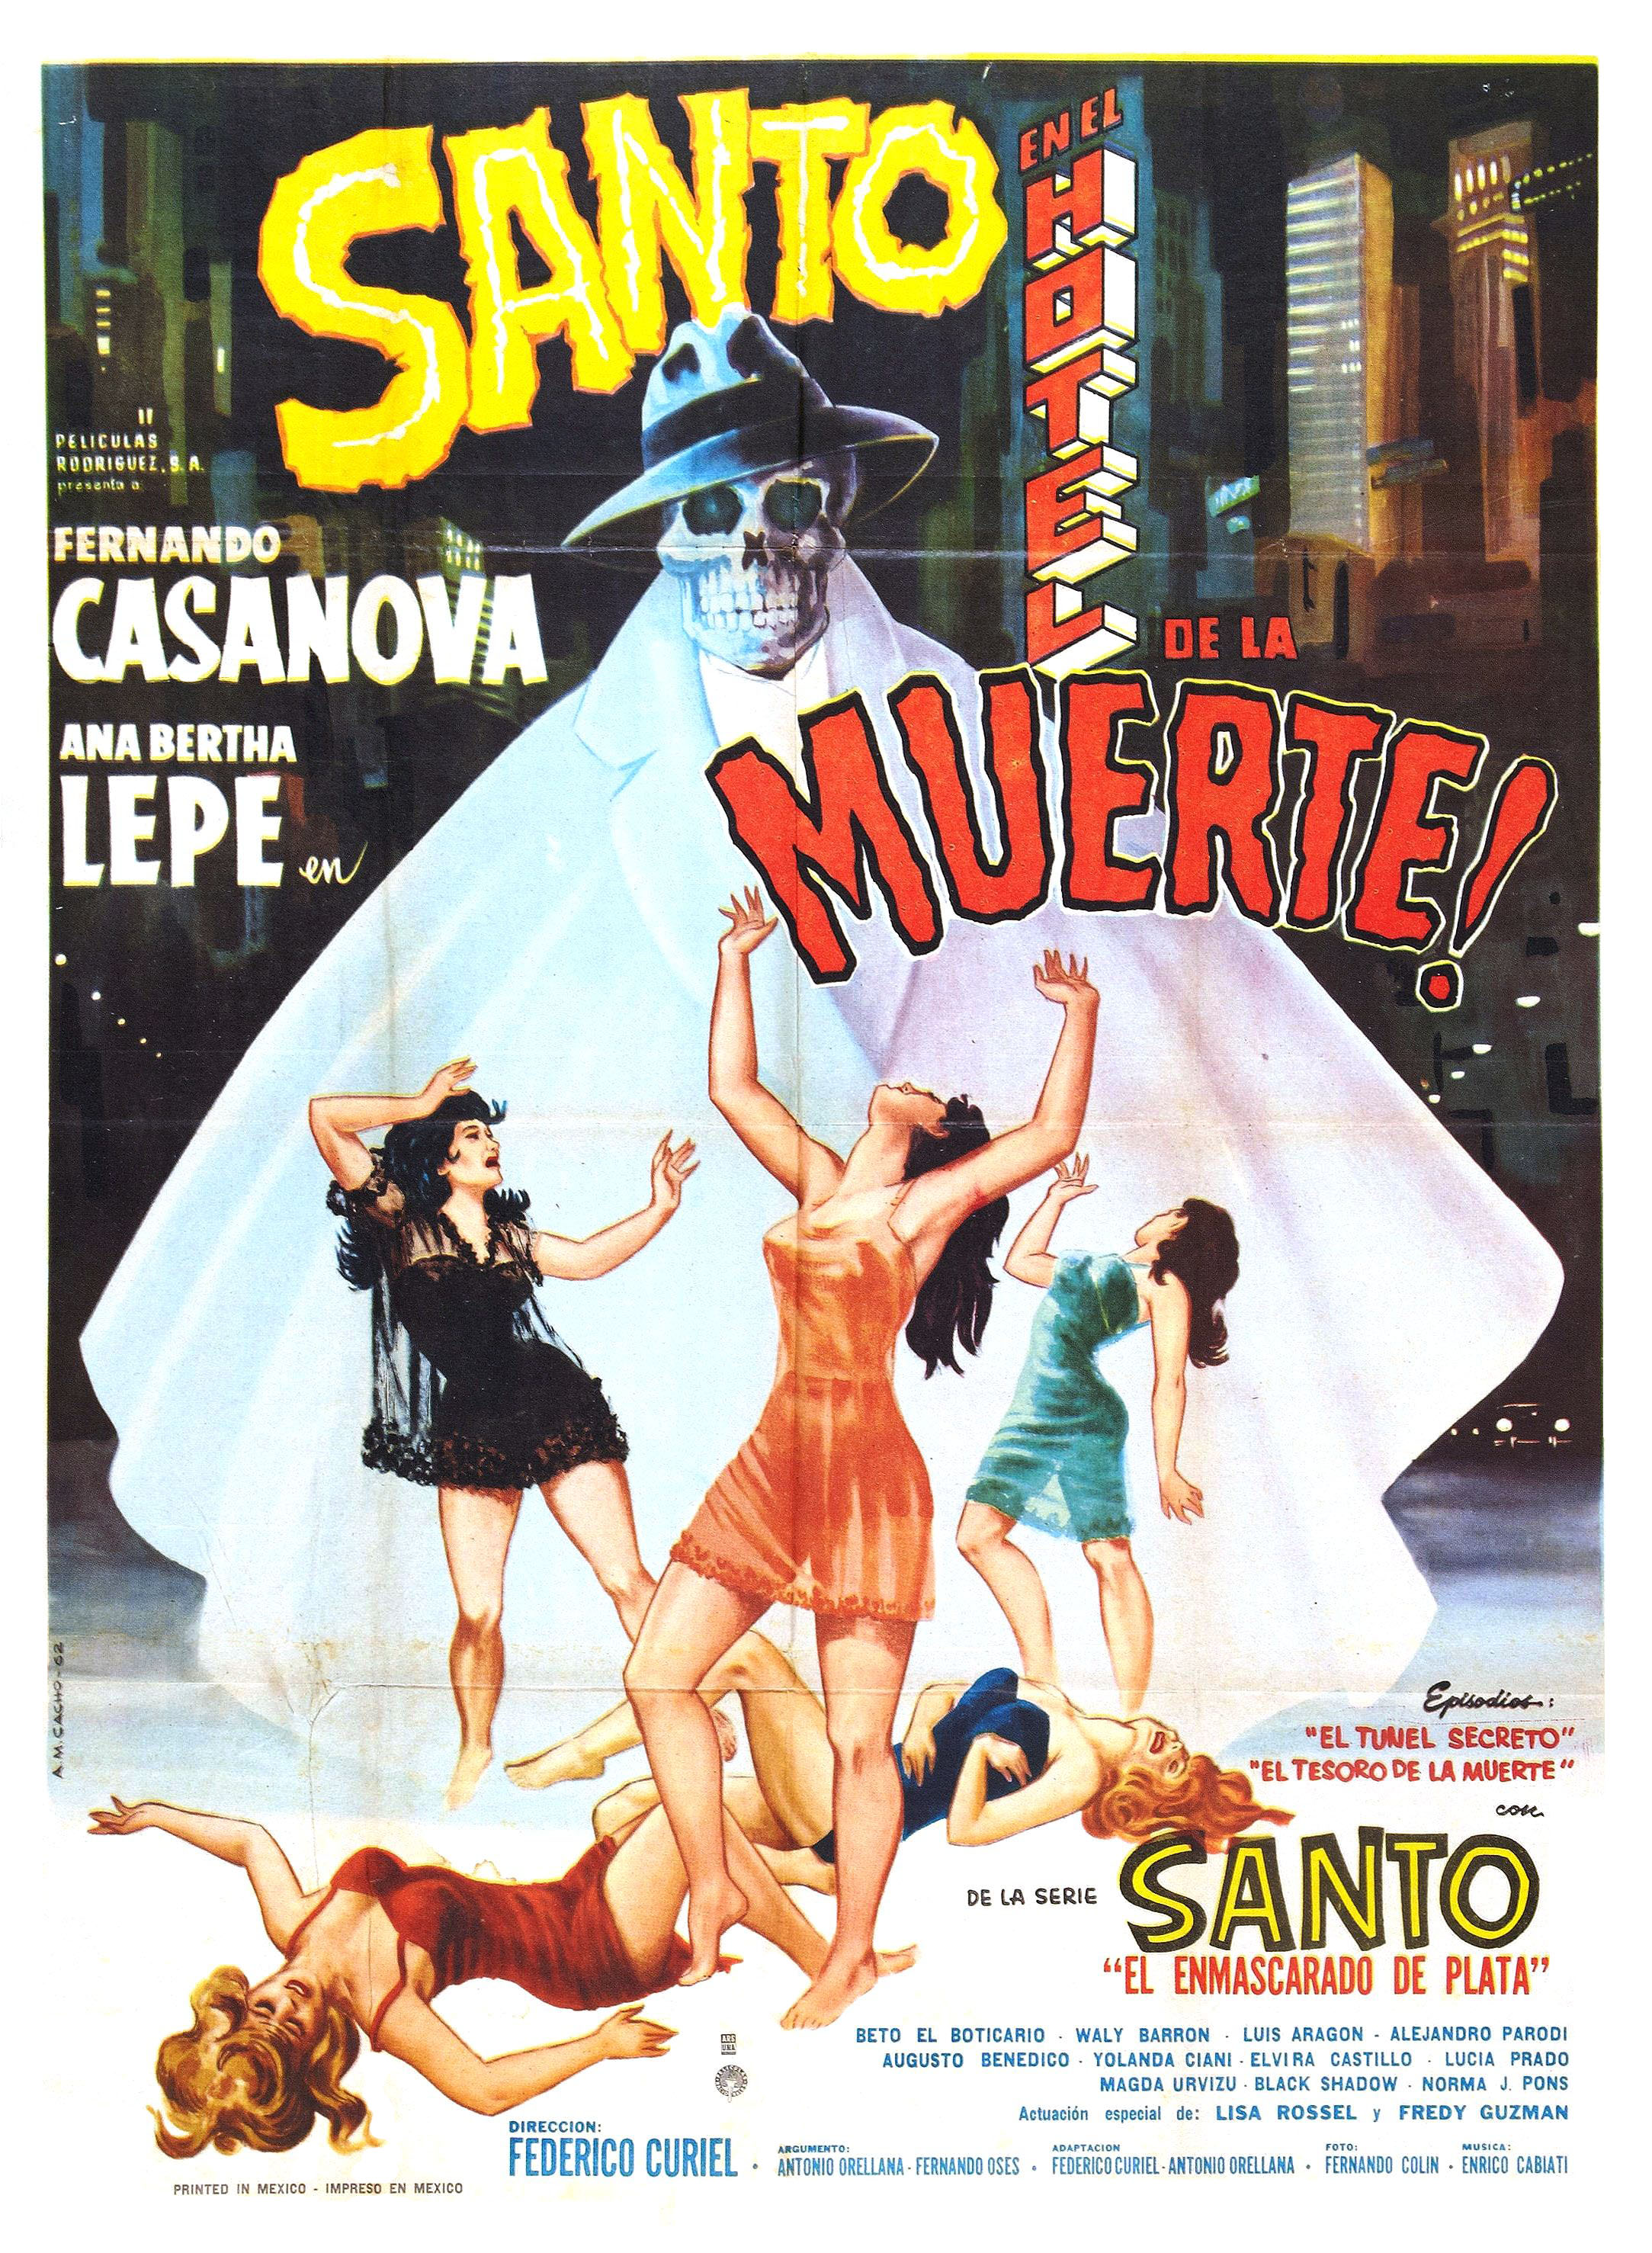 https://i2.wp.com/www.morbidofest.com/wp-content/uploads/2014/03/santo_in_hotel_of_death_poster_02-1.jpg